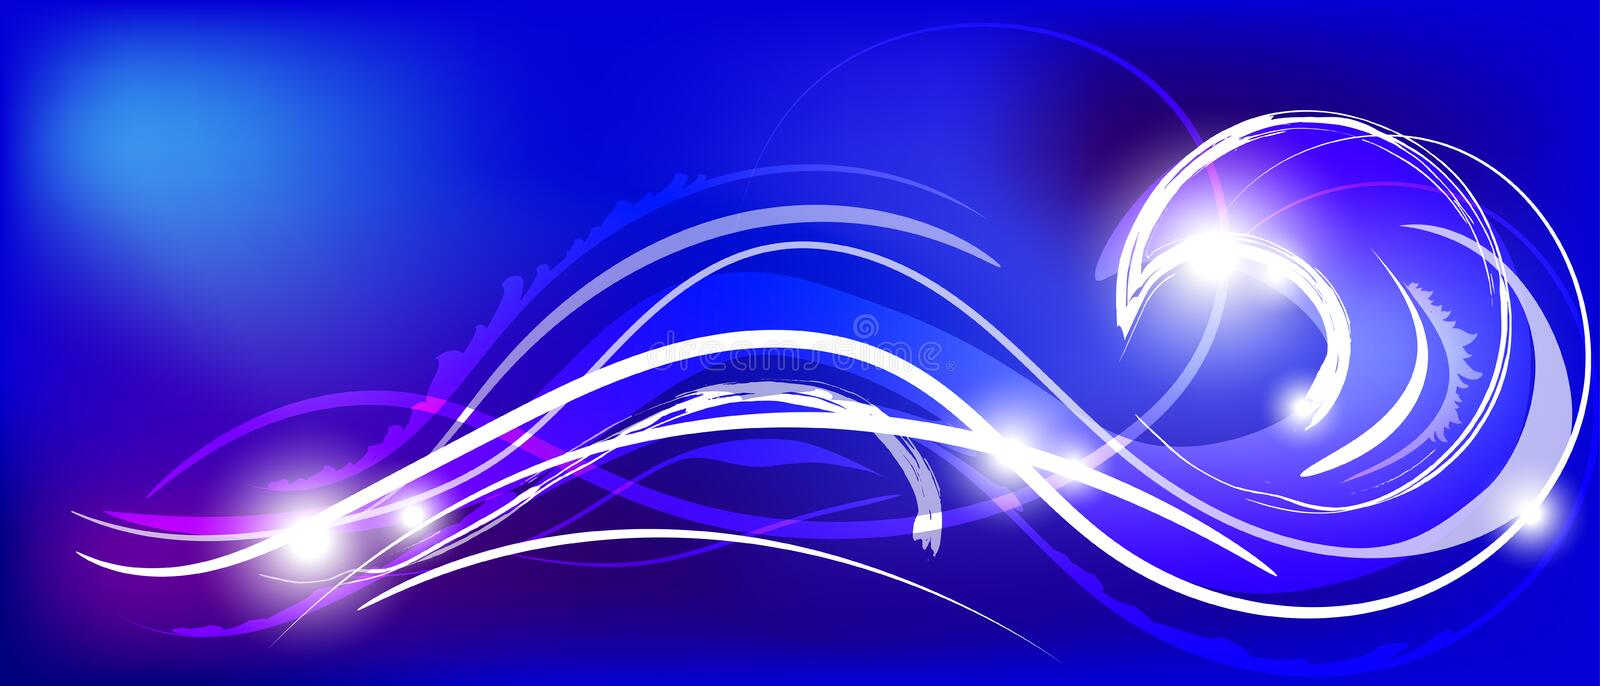 Vector illustration of blue abstract background with magic neon light curved lines. Vector illustration of blue abstract background with blurred magic neon light vector illustration